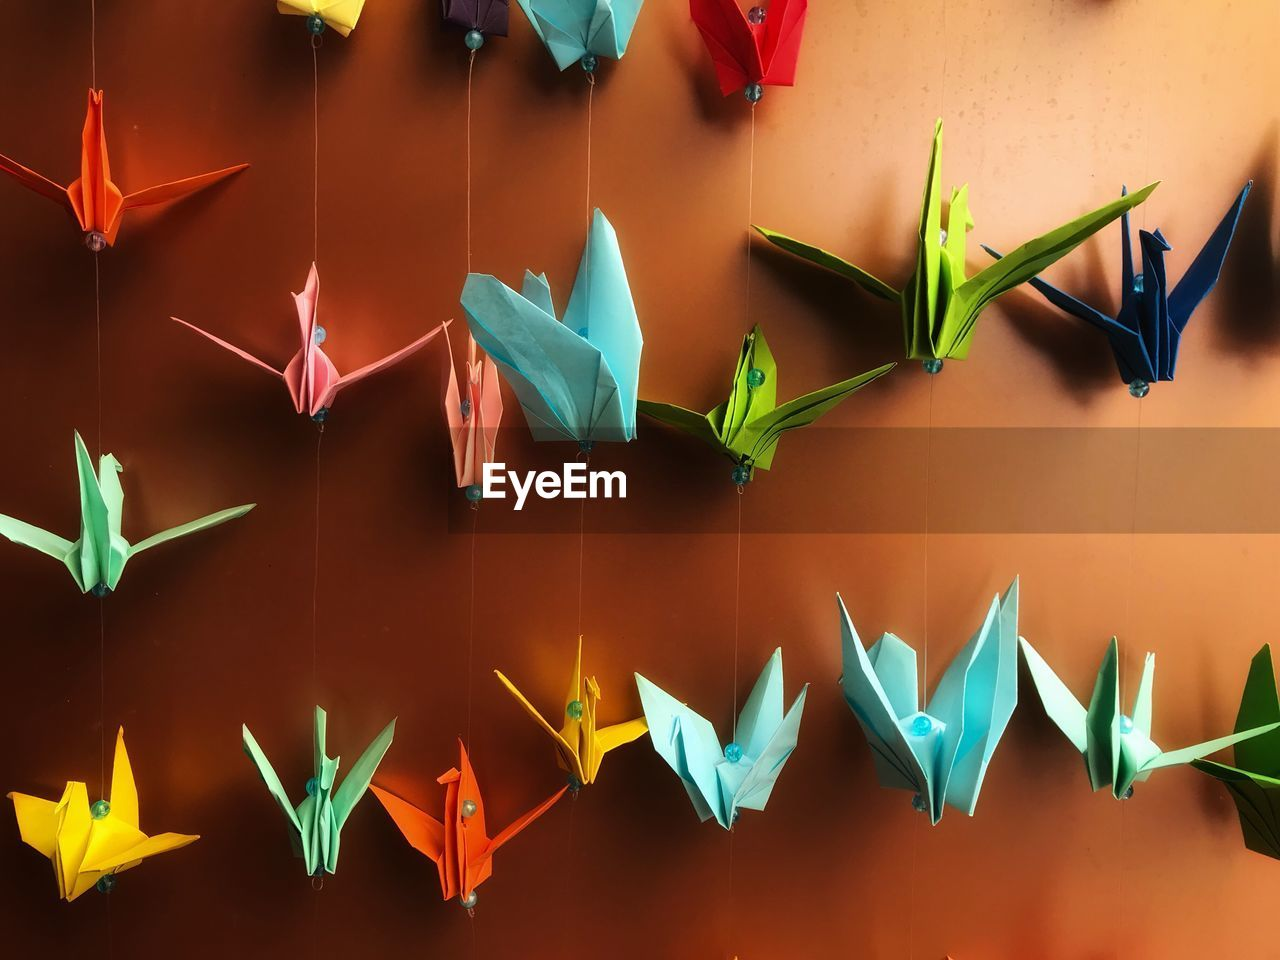 Colorful paper cranes hanging against wall